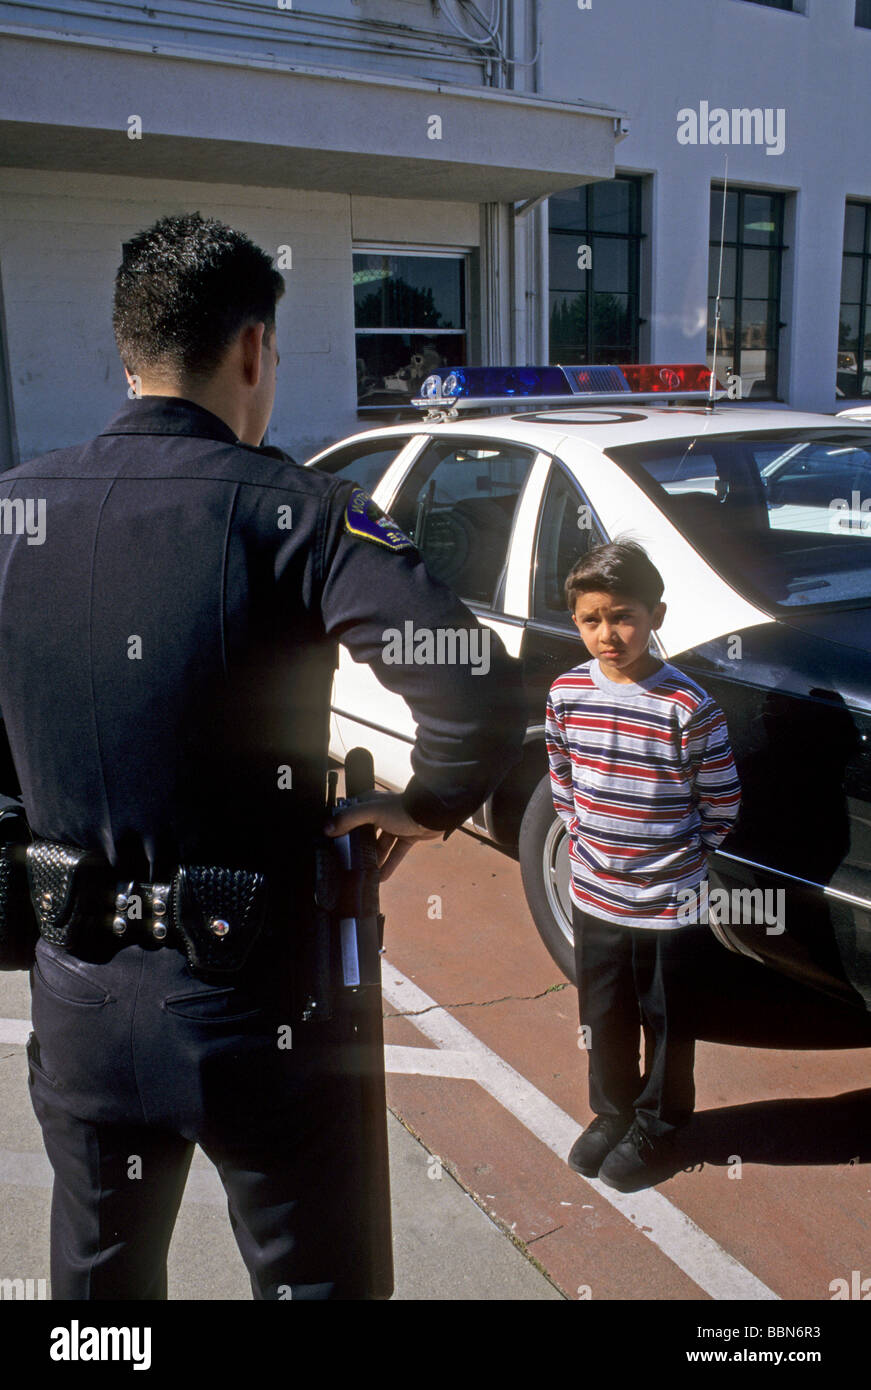 police boy scold trouble scare attention obey bad law legal cop government protect serve question care interview - Stock Image